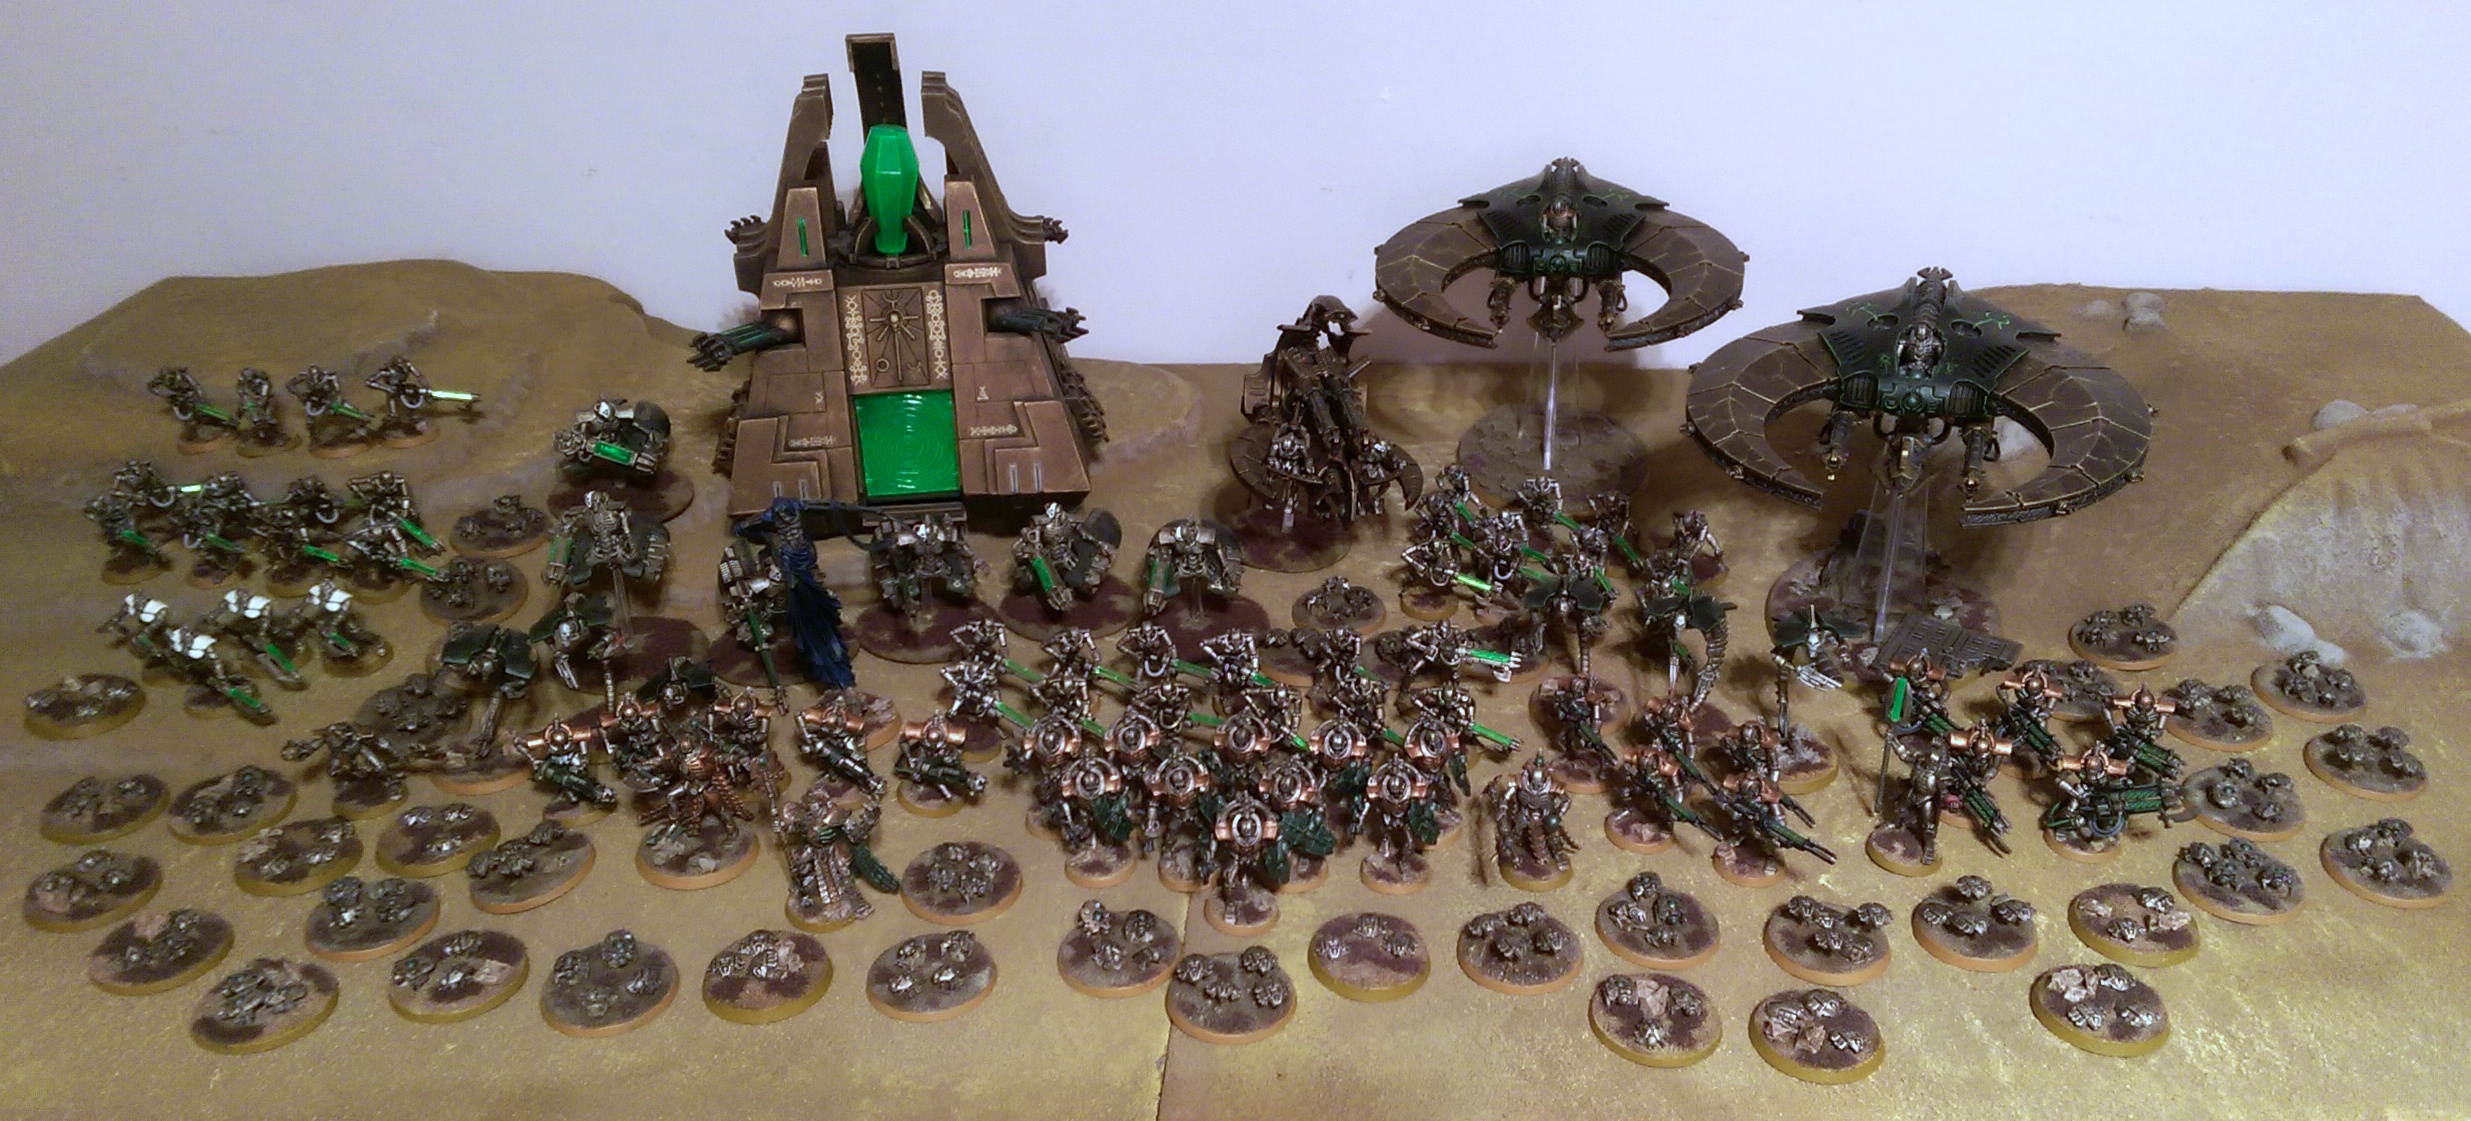 My Completed Warhammer 40,000 Necron Army – Jodrell Plays Games